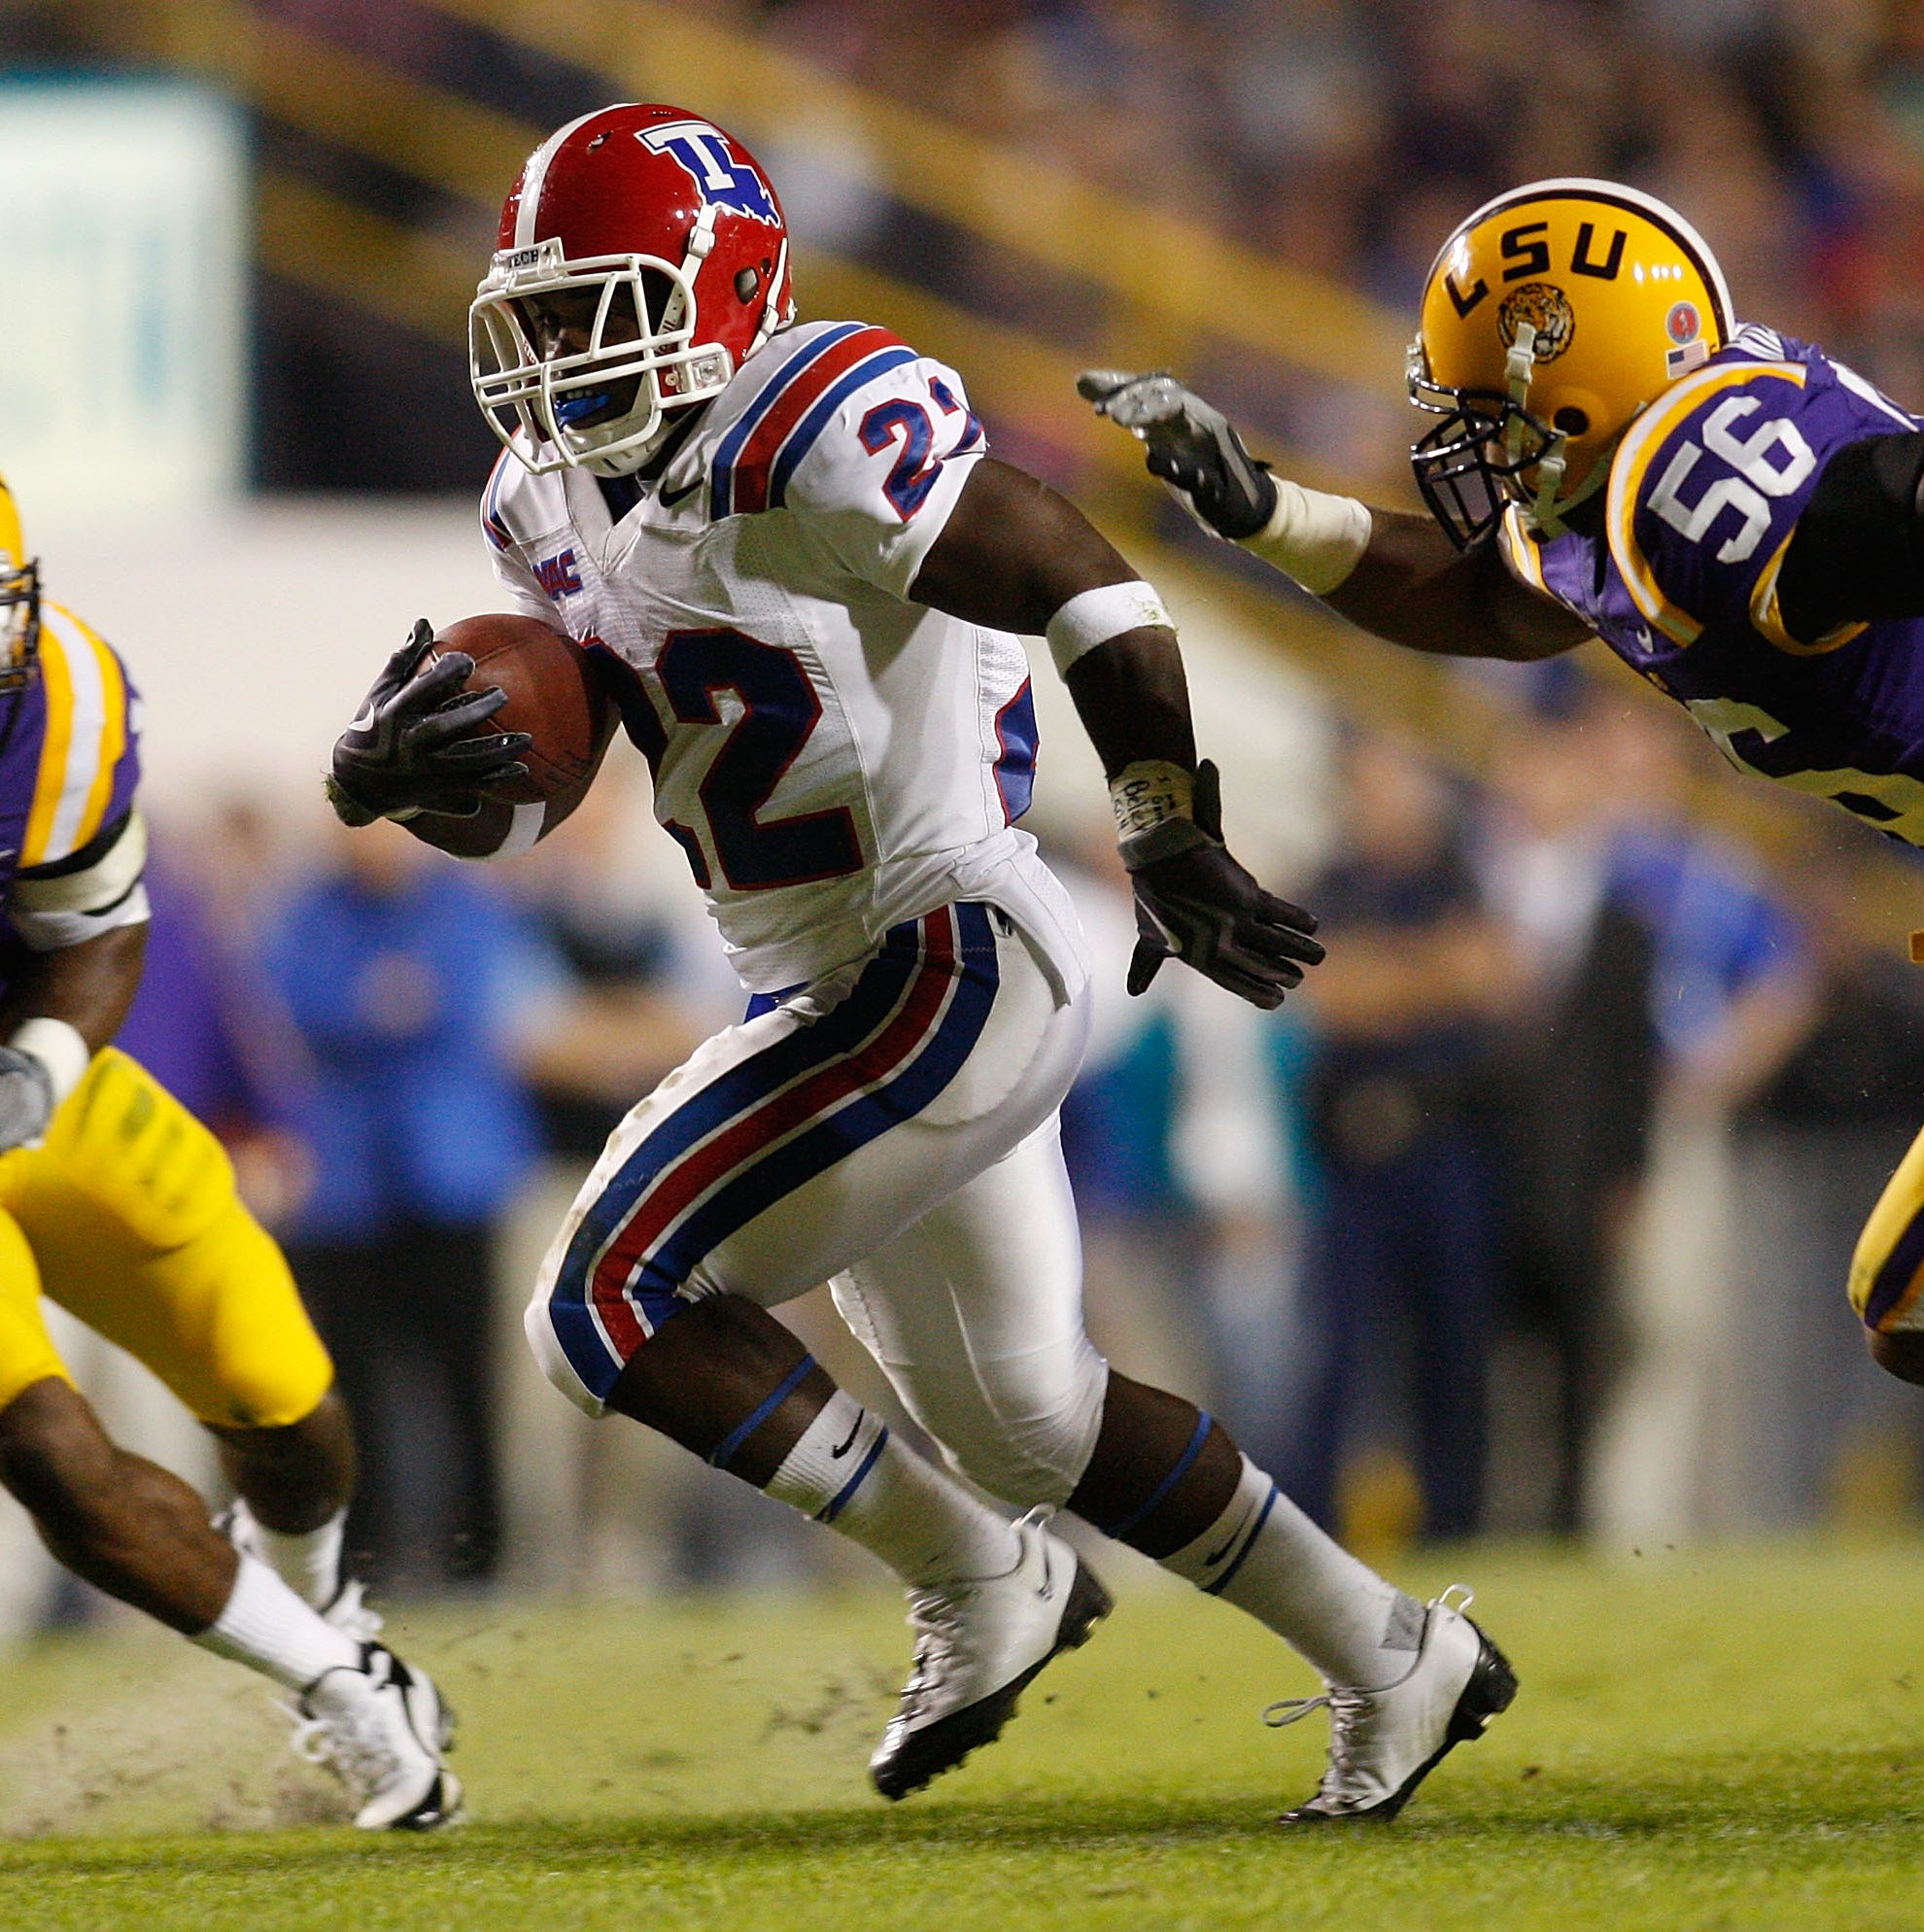 LSU-La. Tech game gets evening kickoff